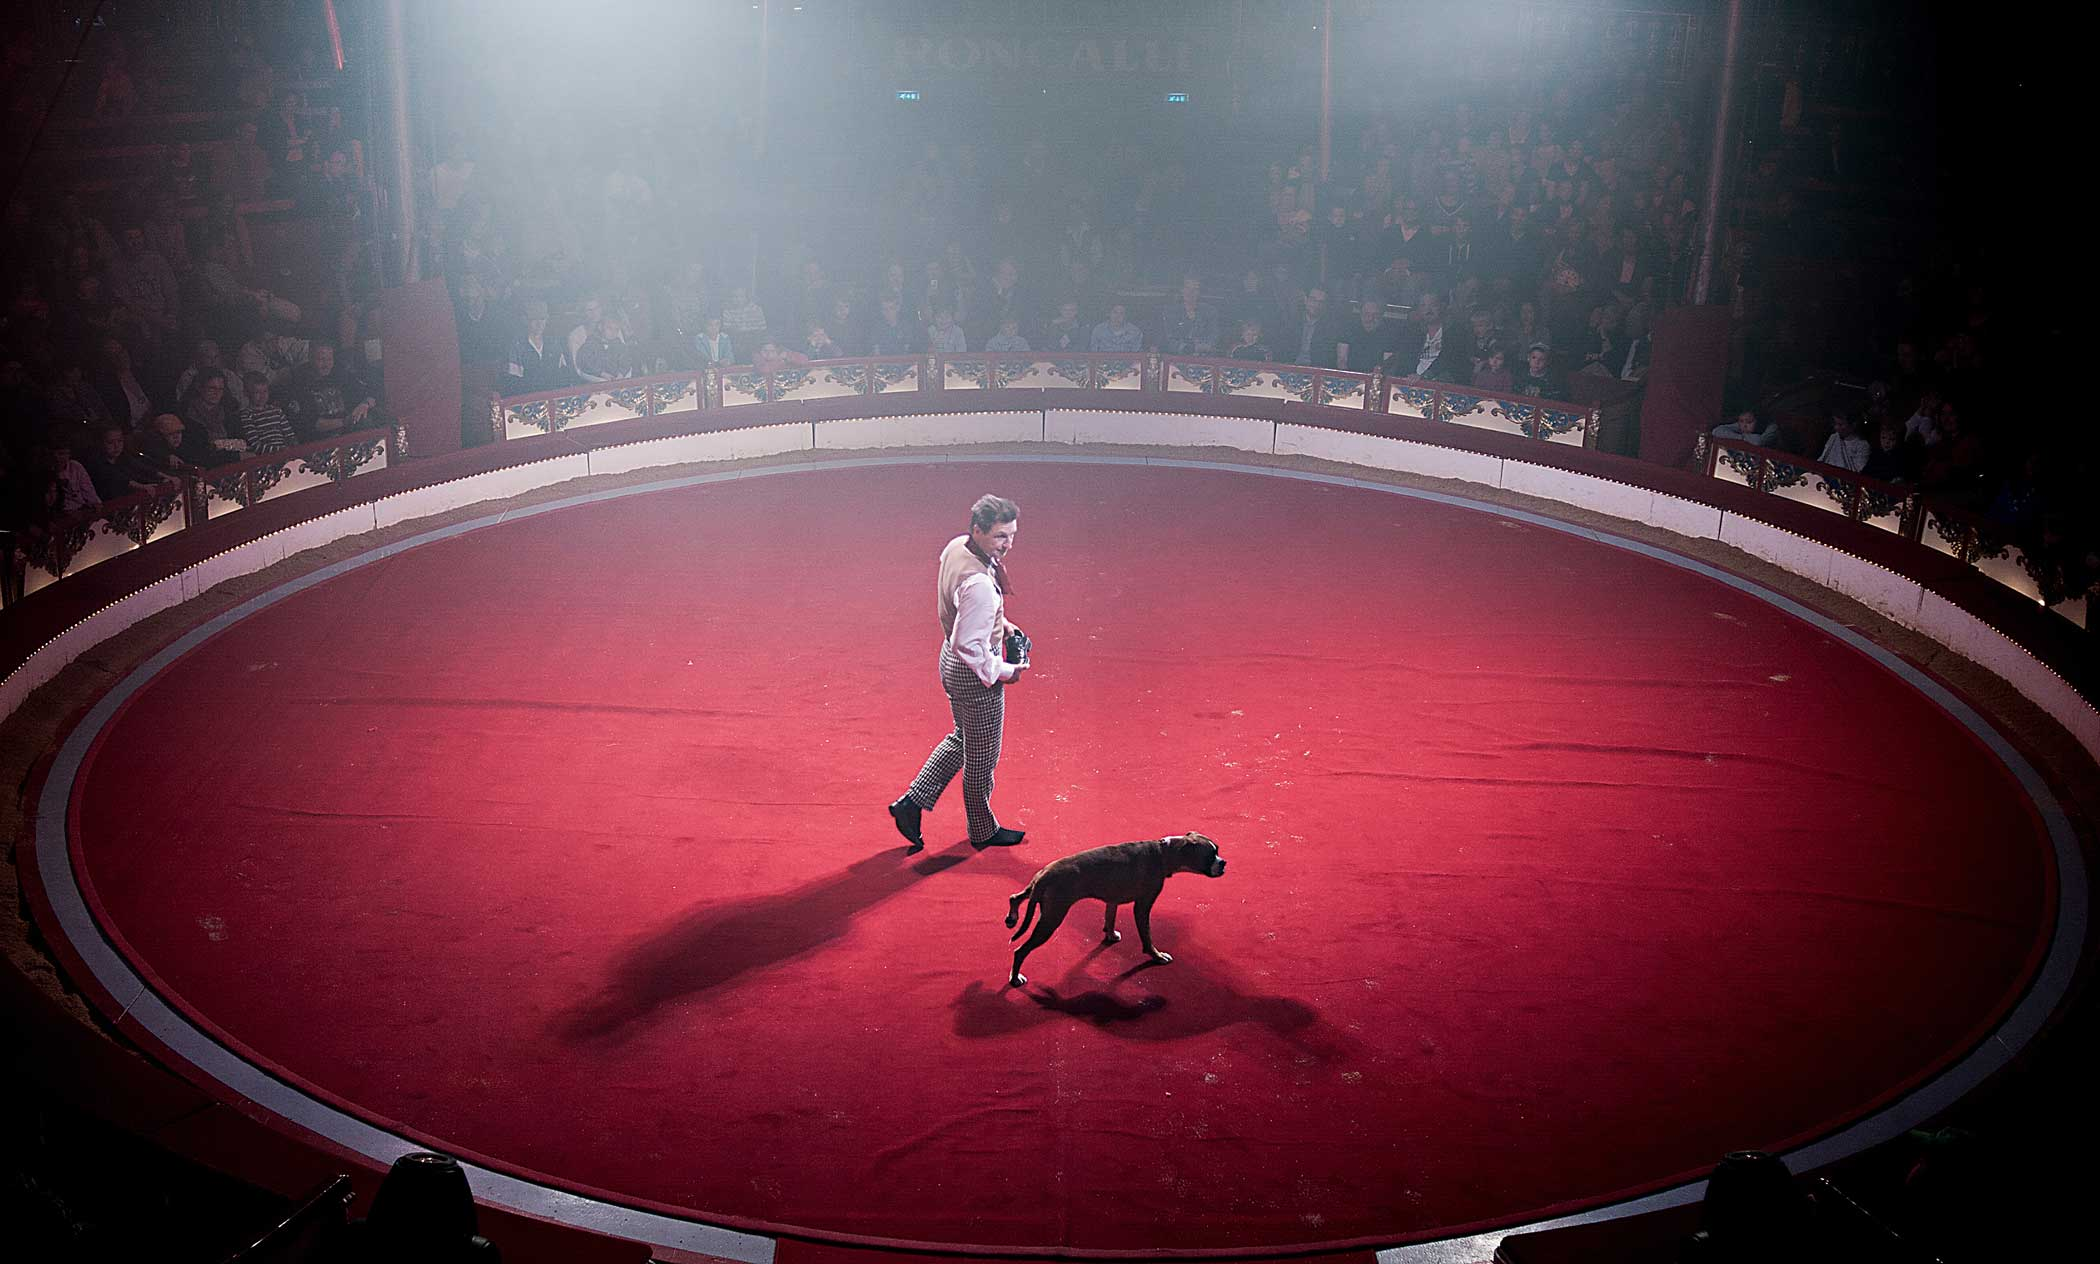 Circus Roncalli                               Leonid Beljakov with  his dog Boxer Klitschko during their show. Leonid sings a song in German:  No, not today, today I am not going to do anything  and Boxer refuses to do anything,makes a sad face, acts like he is peeing.